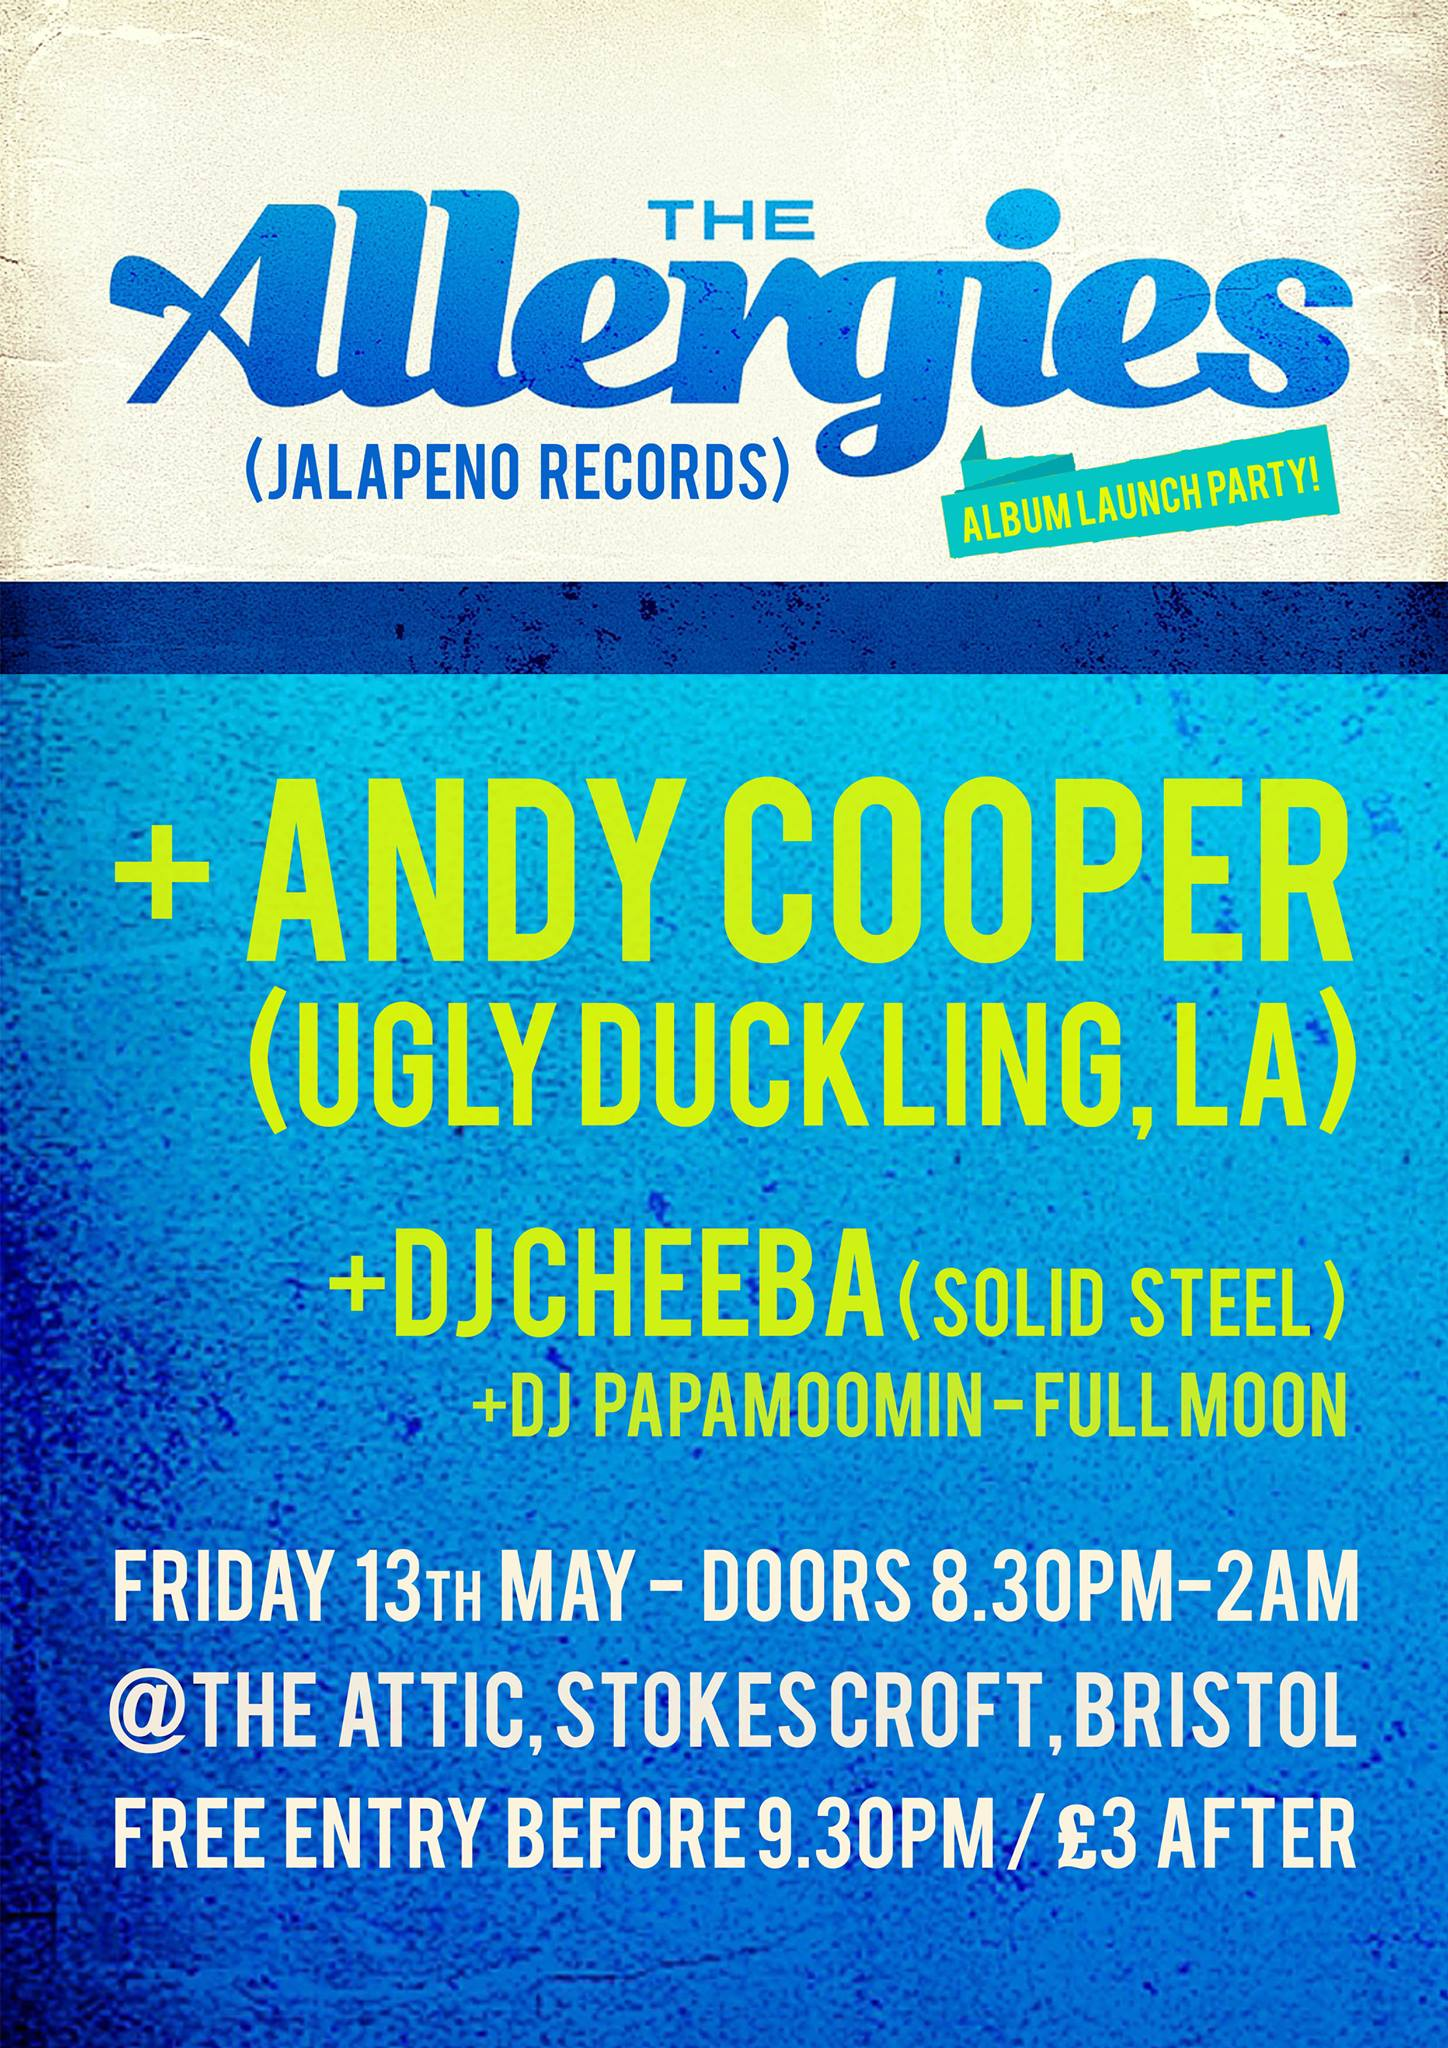 The Allergies Album Launch Party ft. Andy Cooper (Ugly Duckling, LA)